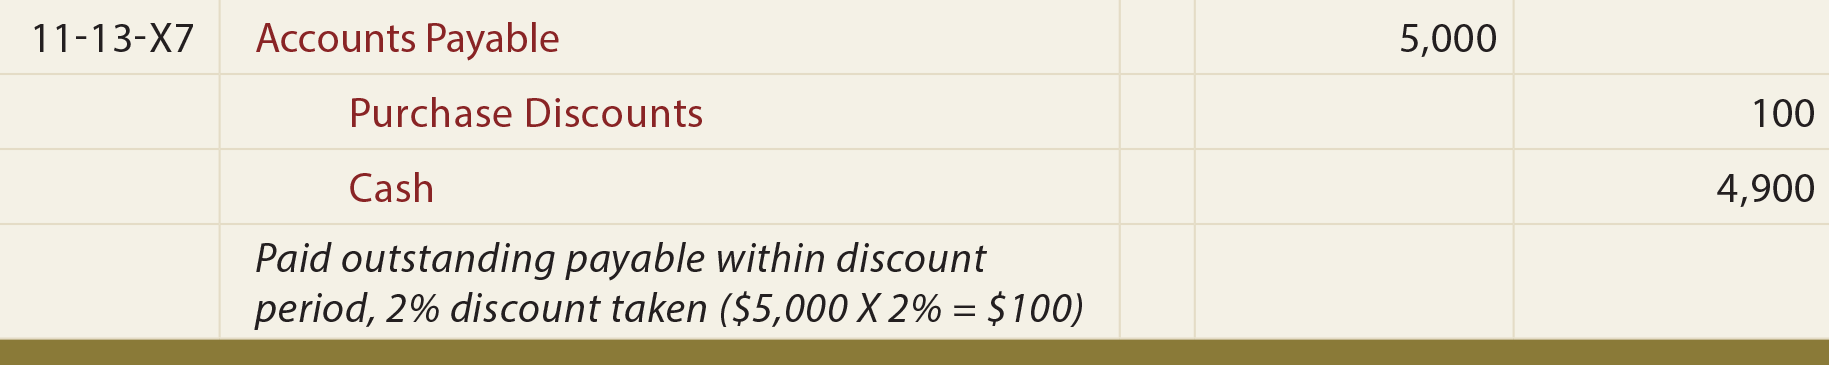 Purchases With Gross Discount General Journal Entry - Entry to record payment within the discount period